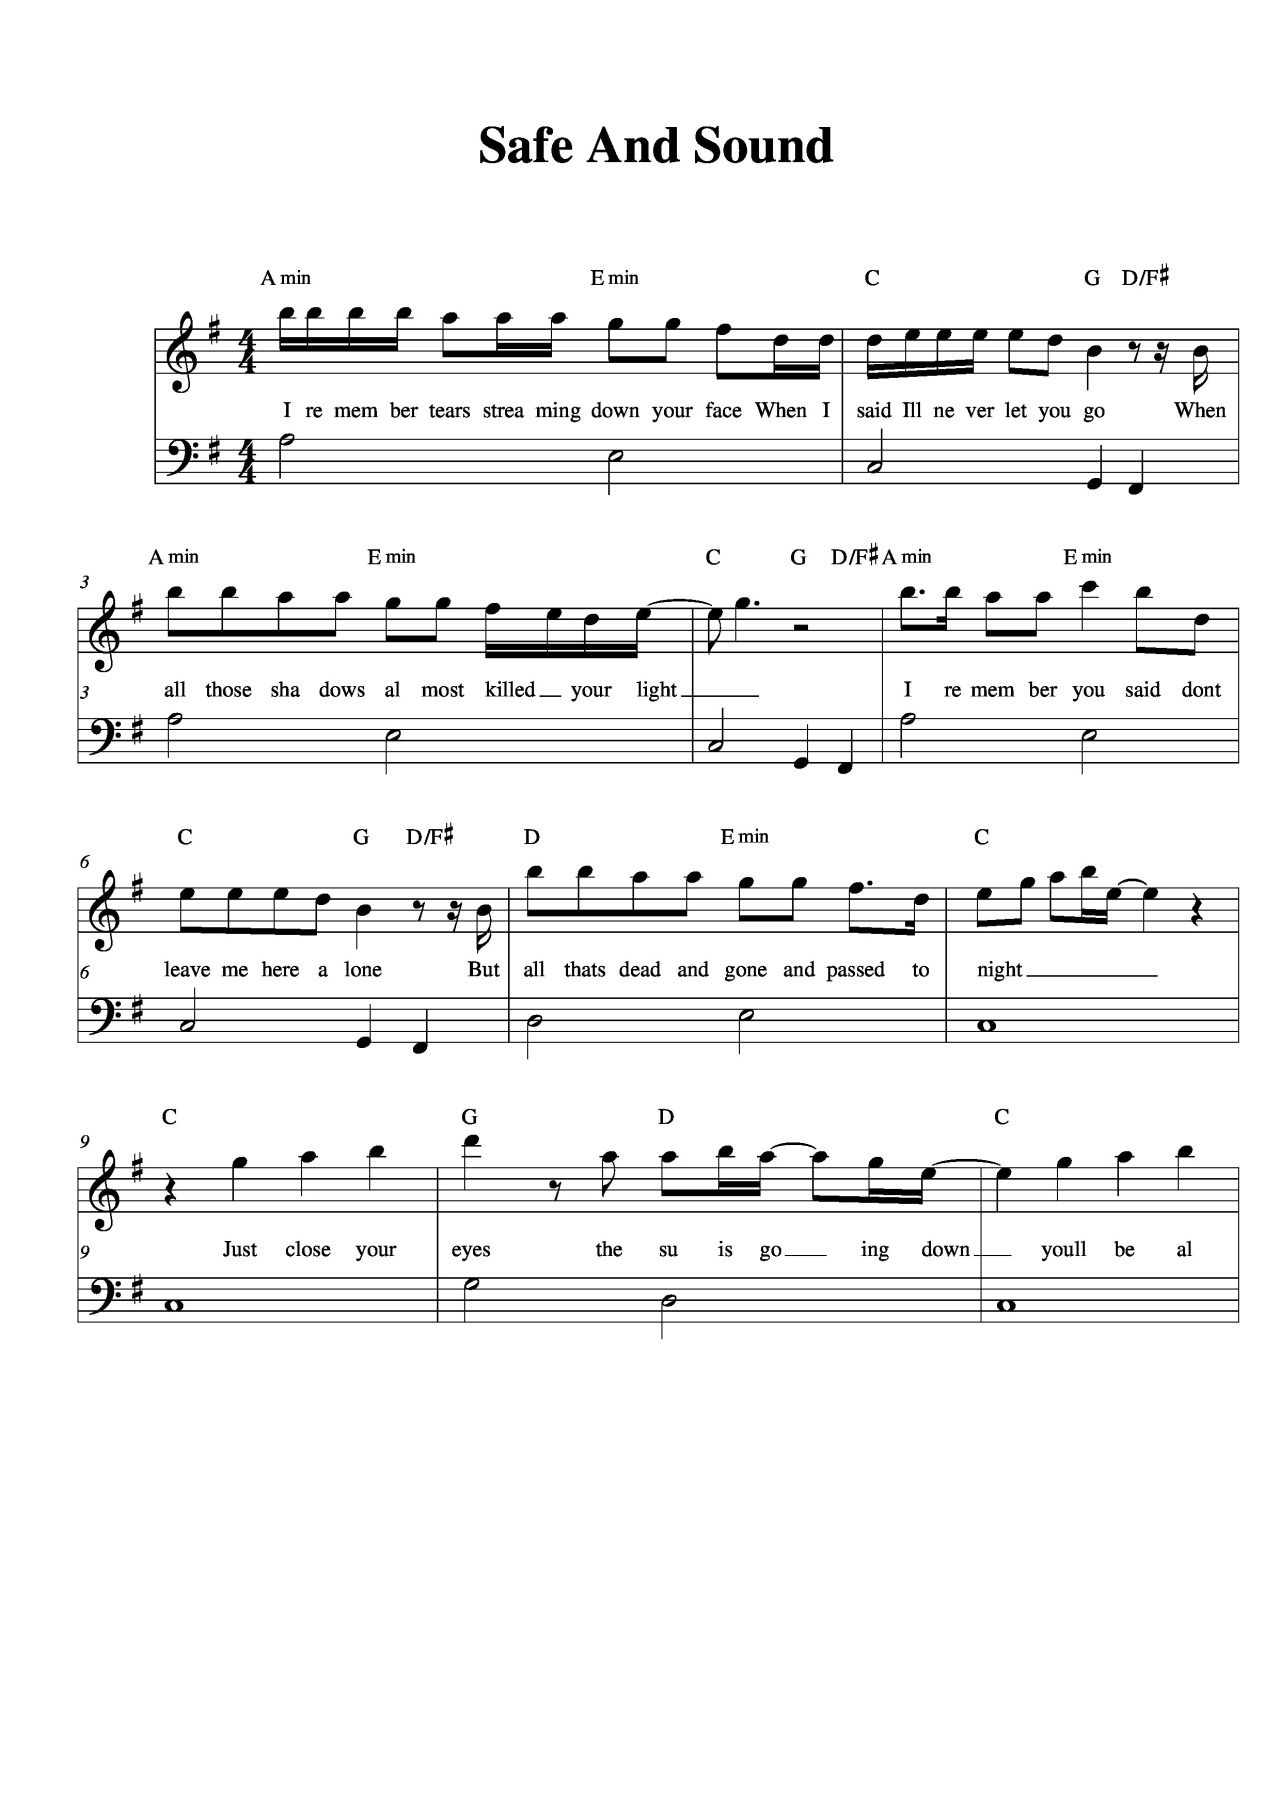 Piano sheet music safe and sound taylor swift download the pdf piano sheet music safe and sound taylor swift download the pdf hexwebz Choice Image